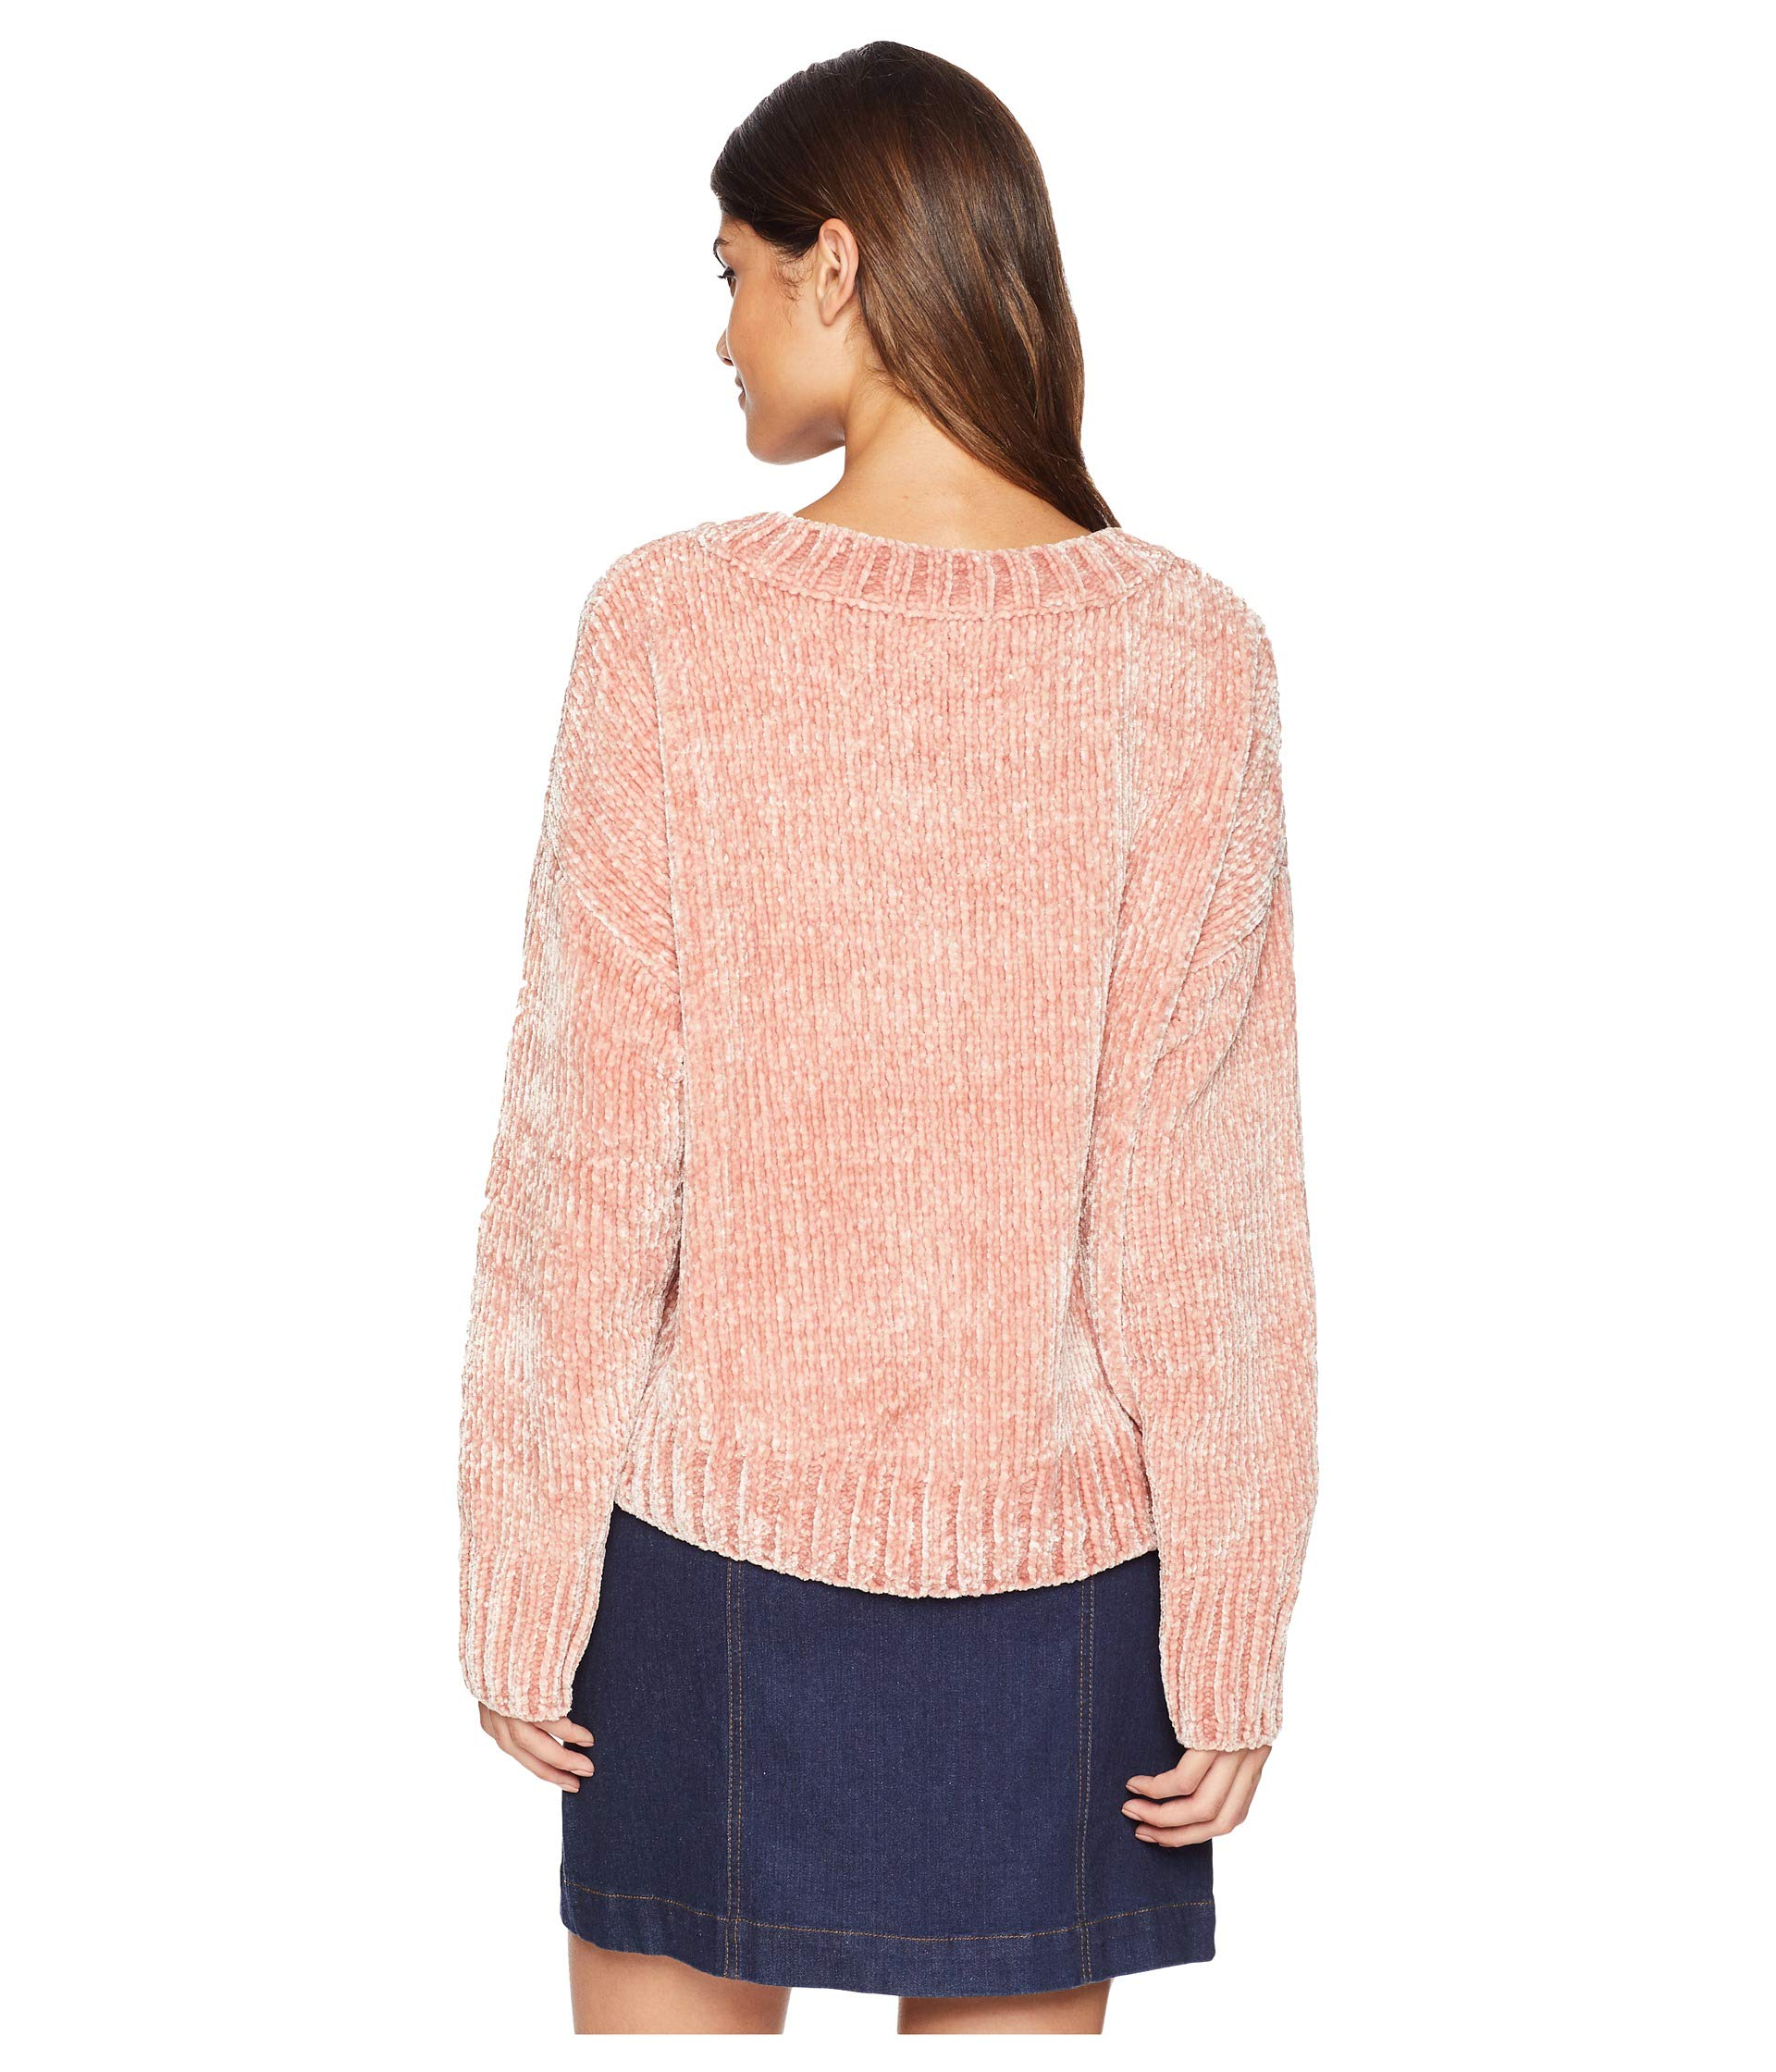 Scotch Sweater Sanctuary Chenille Pullover Pink fZWnfFz7v